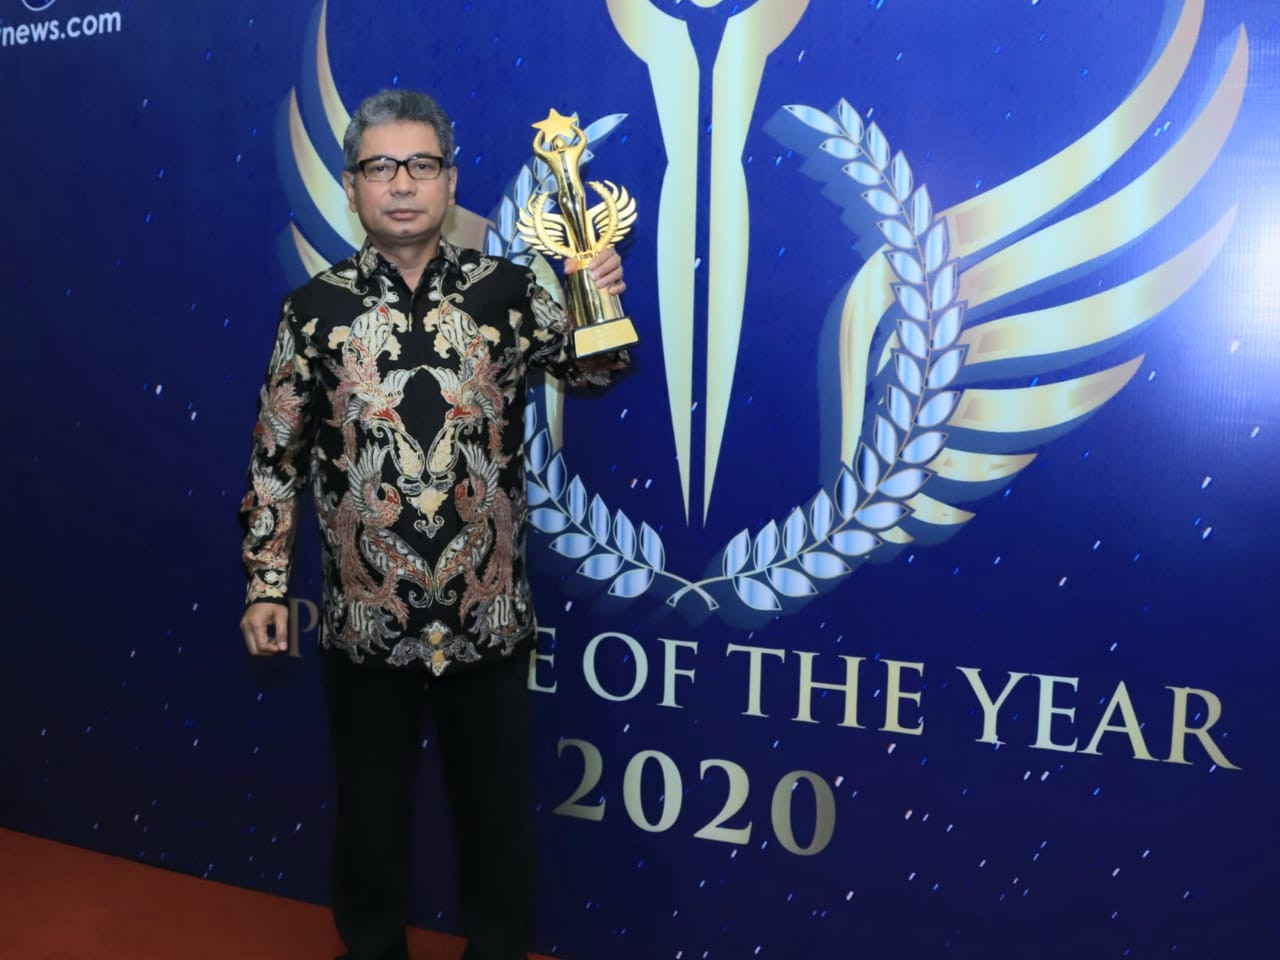 BRI president director named Best CEO of the Year